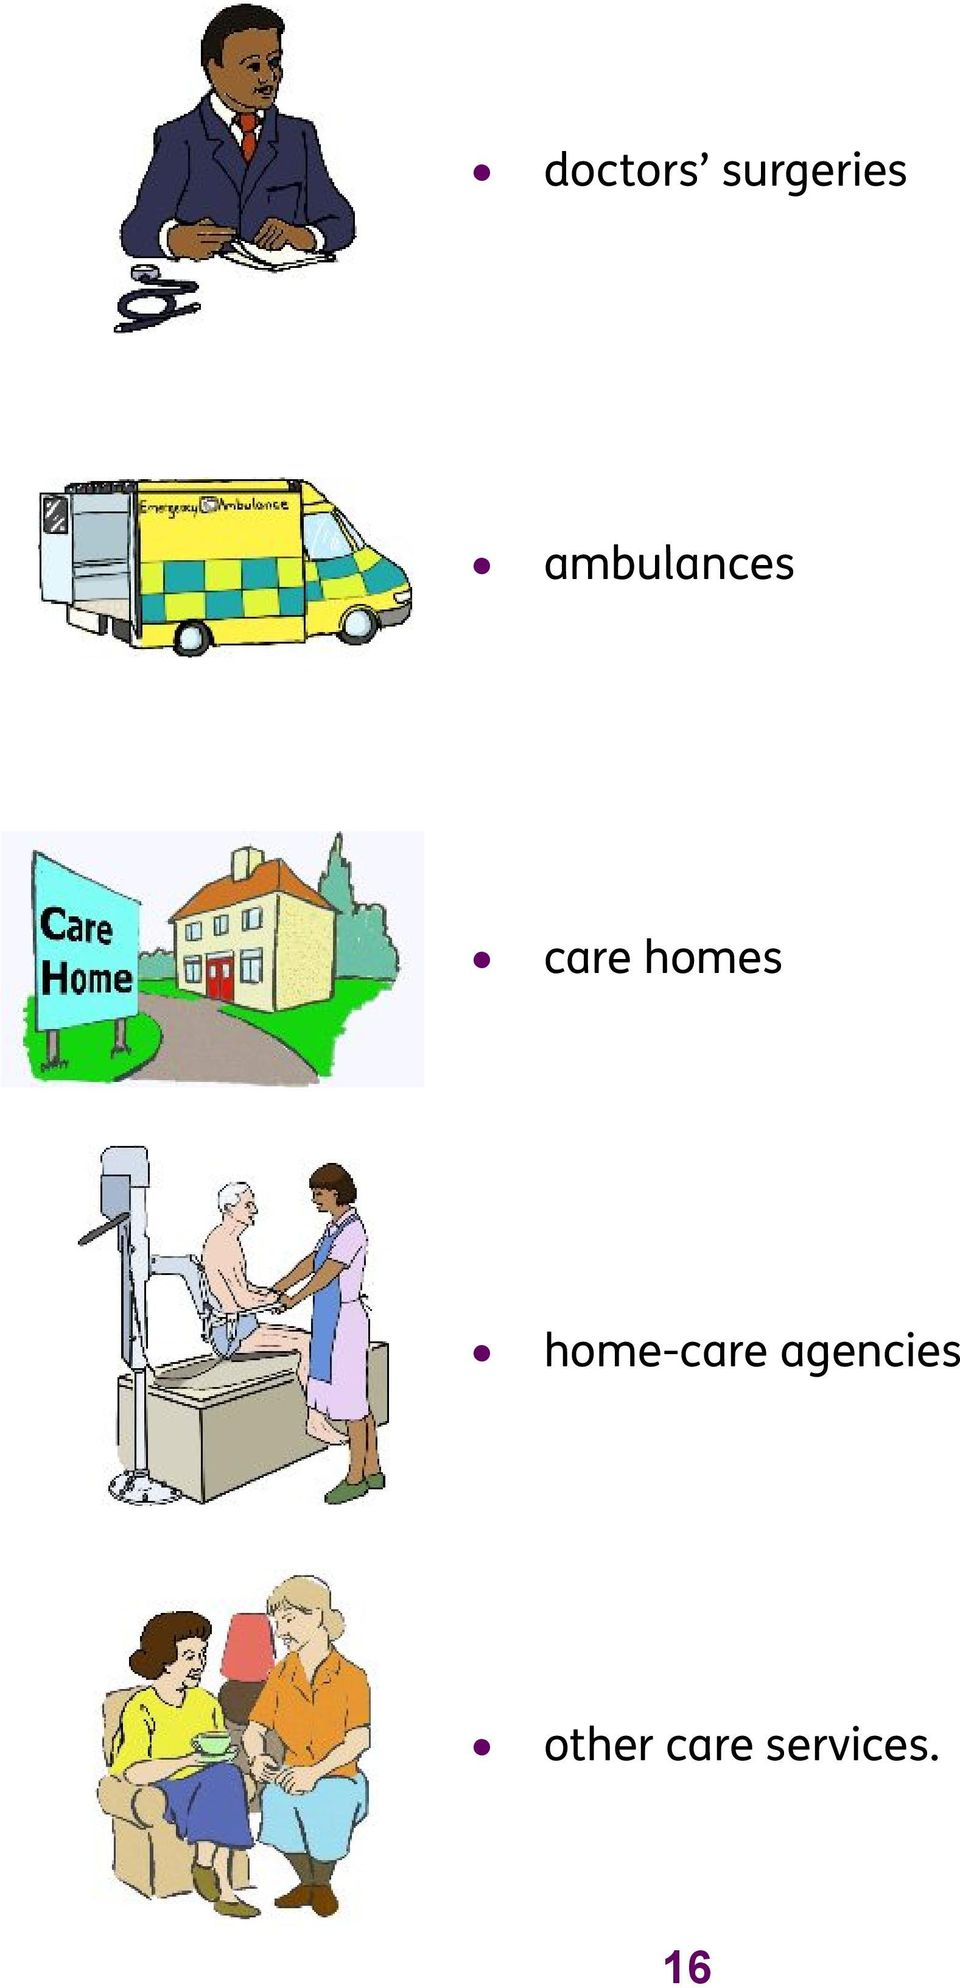 homes home-care